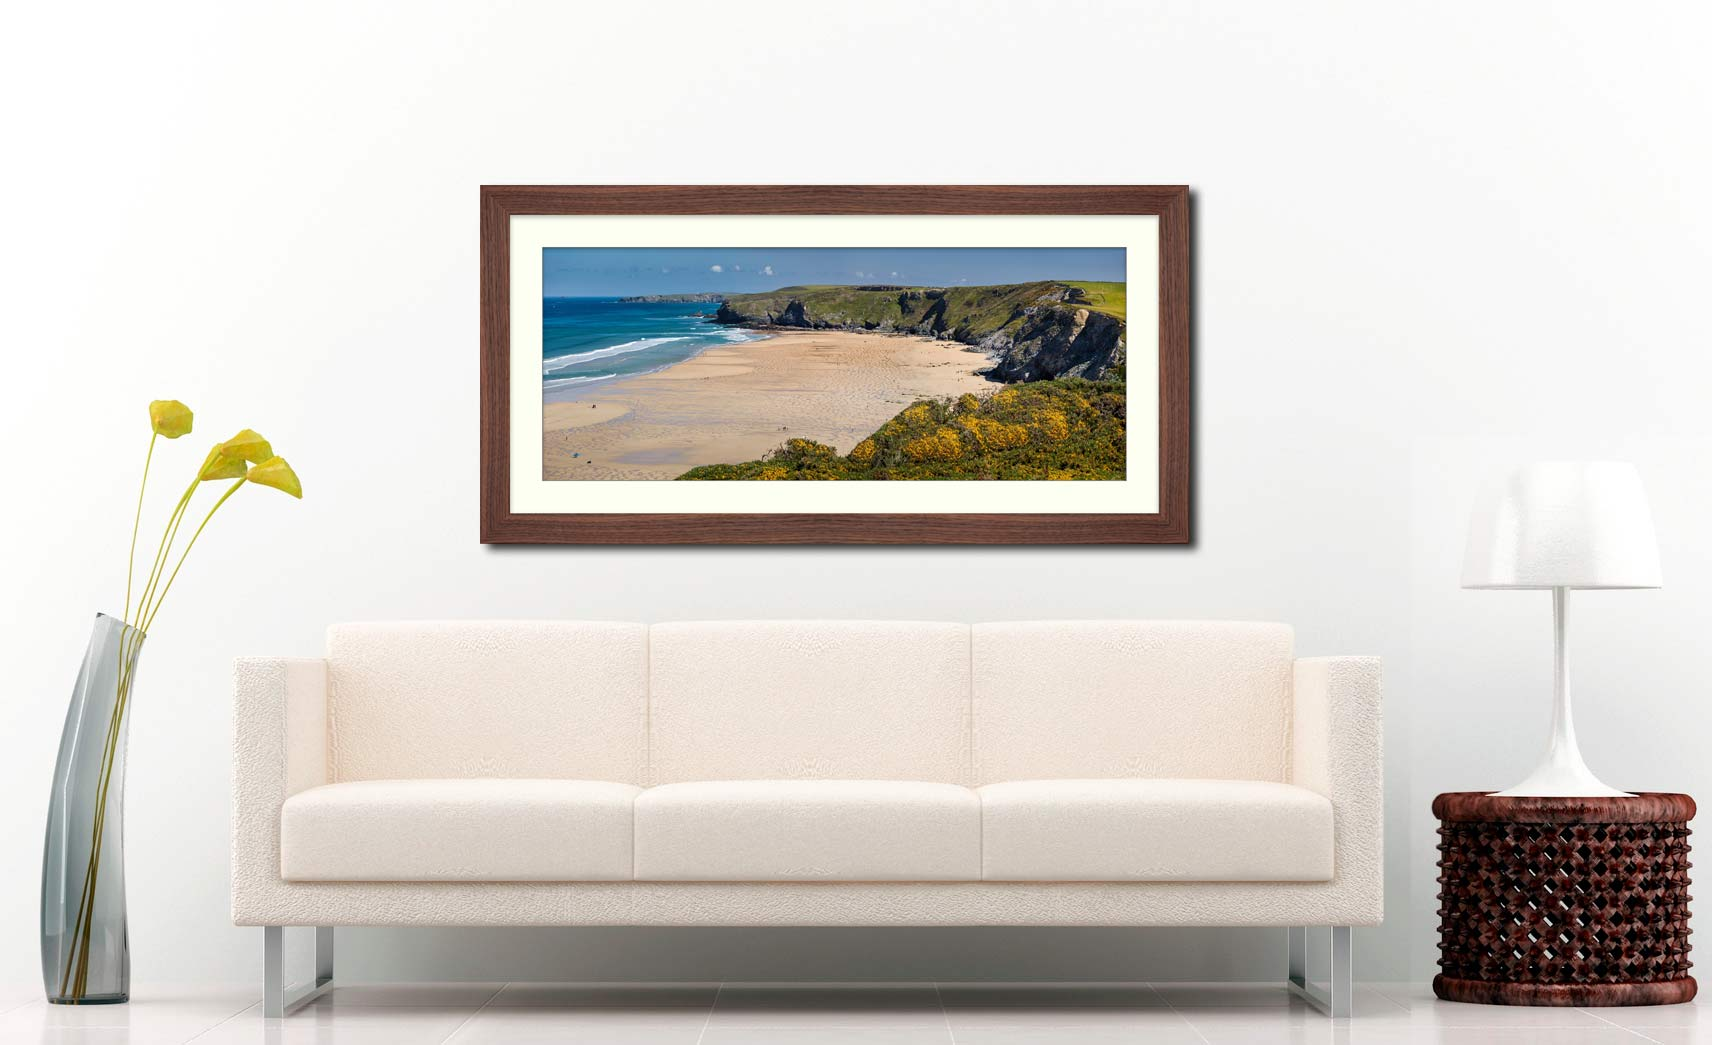 Perranporth Beach - Framed Print with Mount on Wall